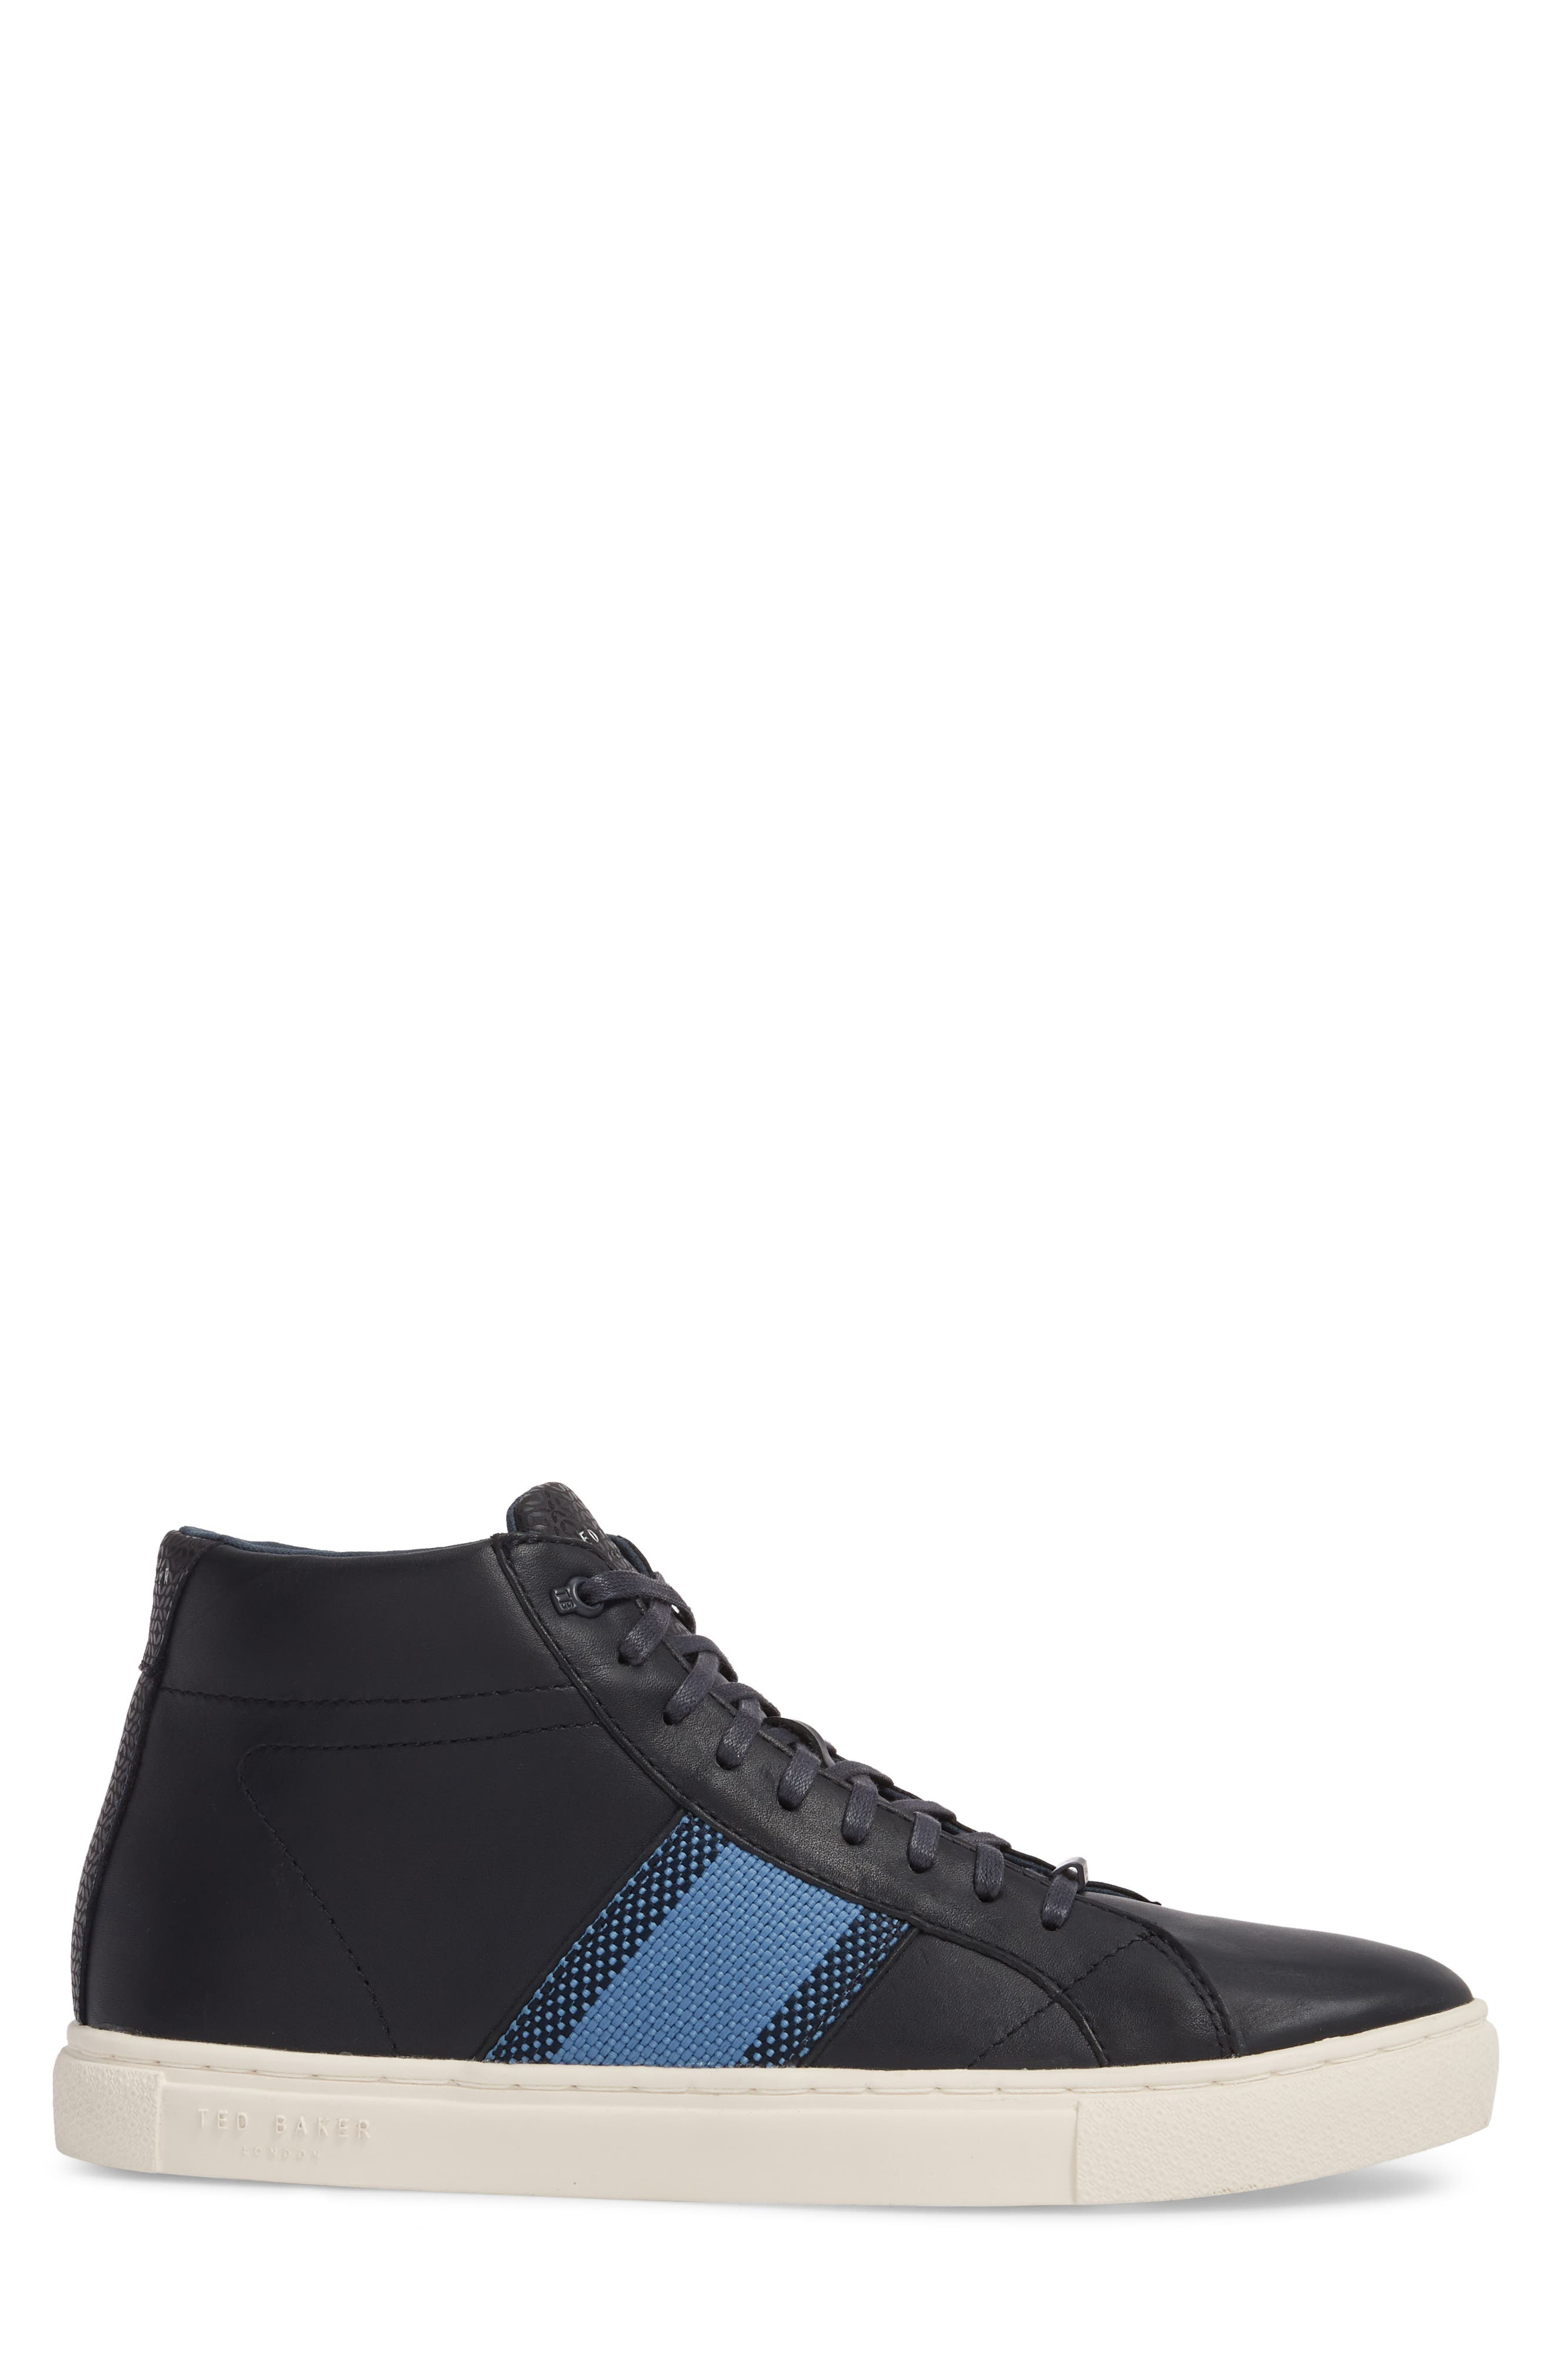 Cruuw High Top Sneaker,                             Alternate thumbnail 3, color,                             Dark Blue Leather